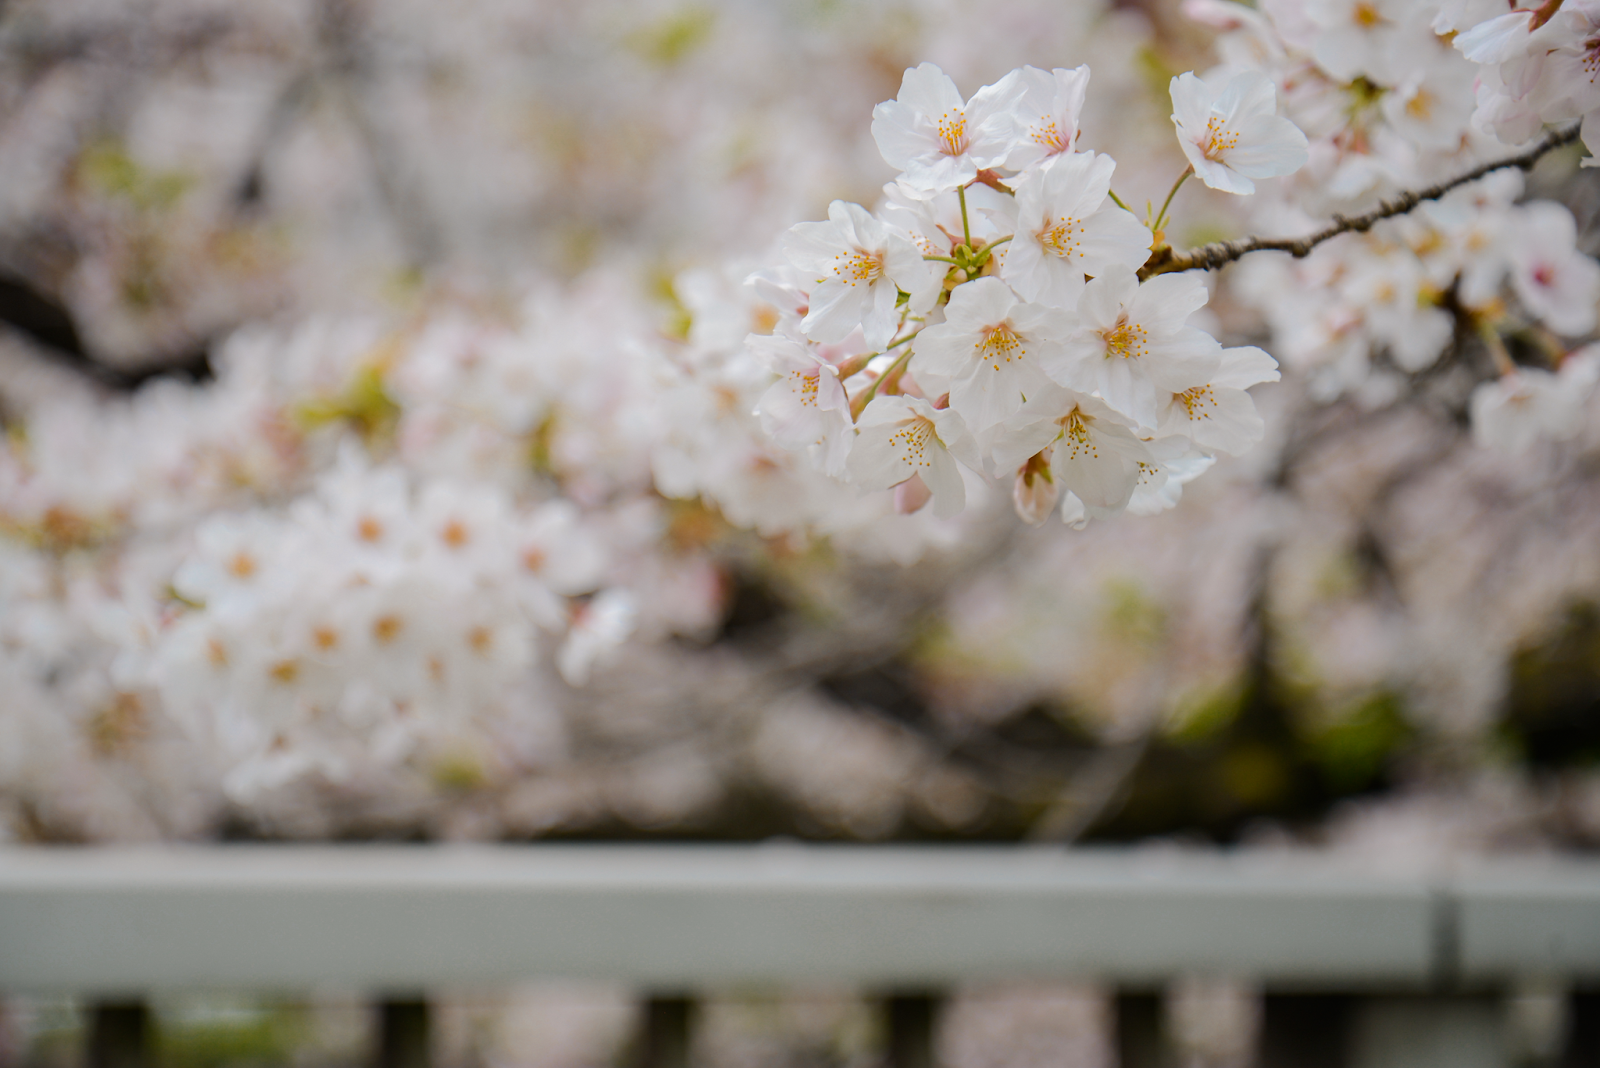 Cherry blossom in Tokyo, Tokyo's Not So Secret Cherry Blossoms Spots That You Might Not Know Of - Style and Travel Blogger Van Le (FOREVERVANNY.com)